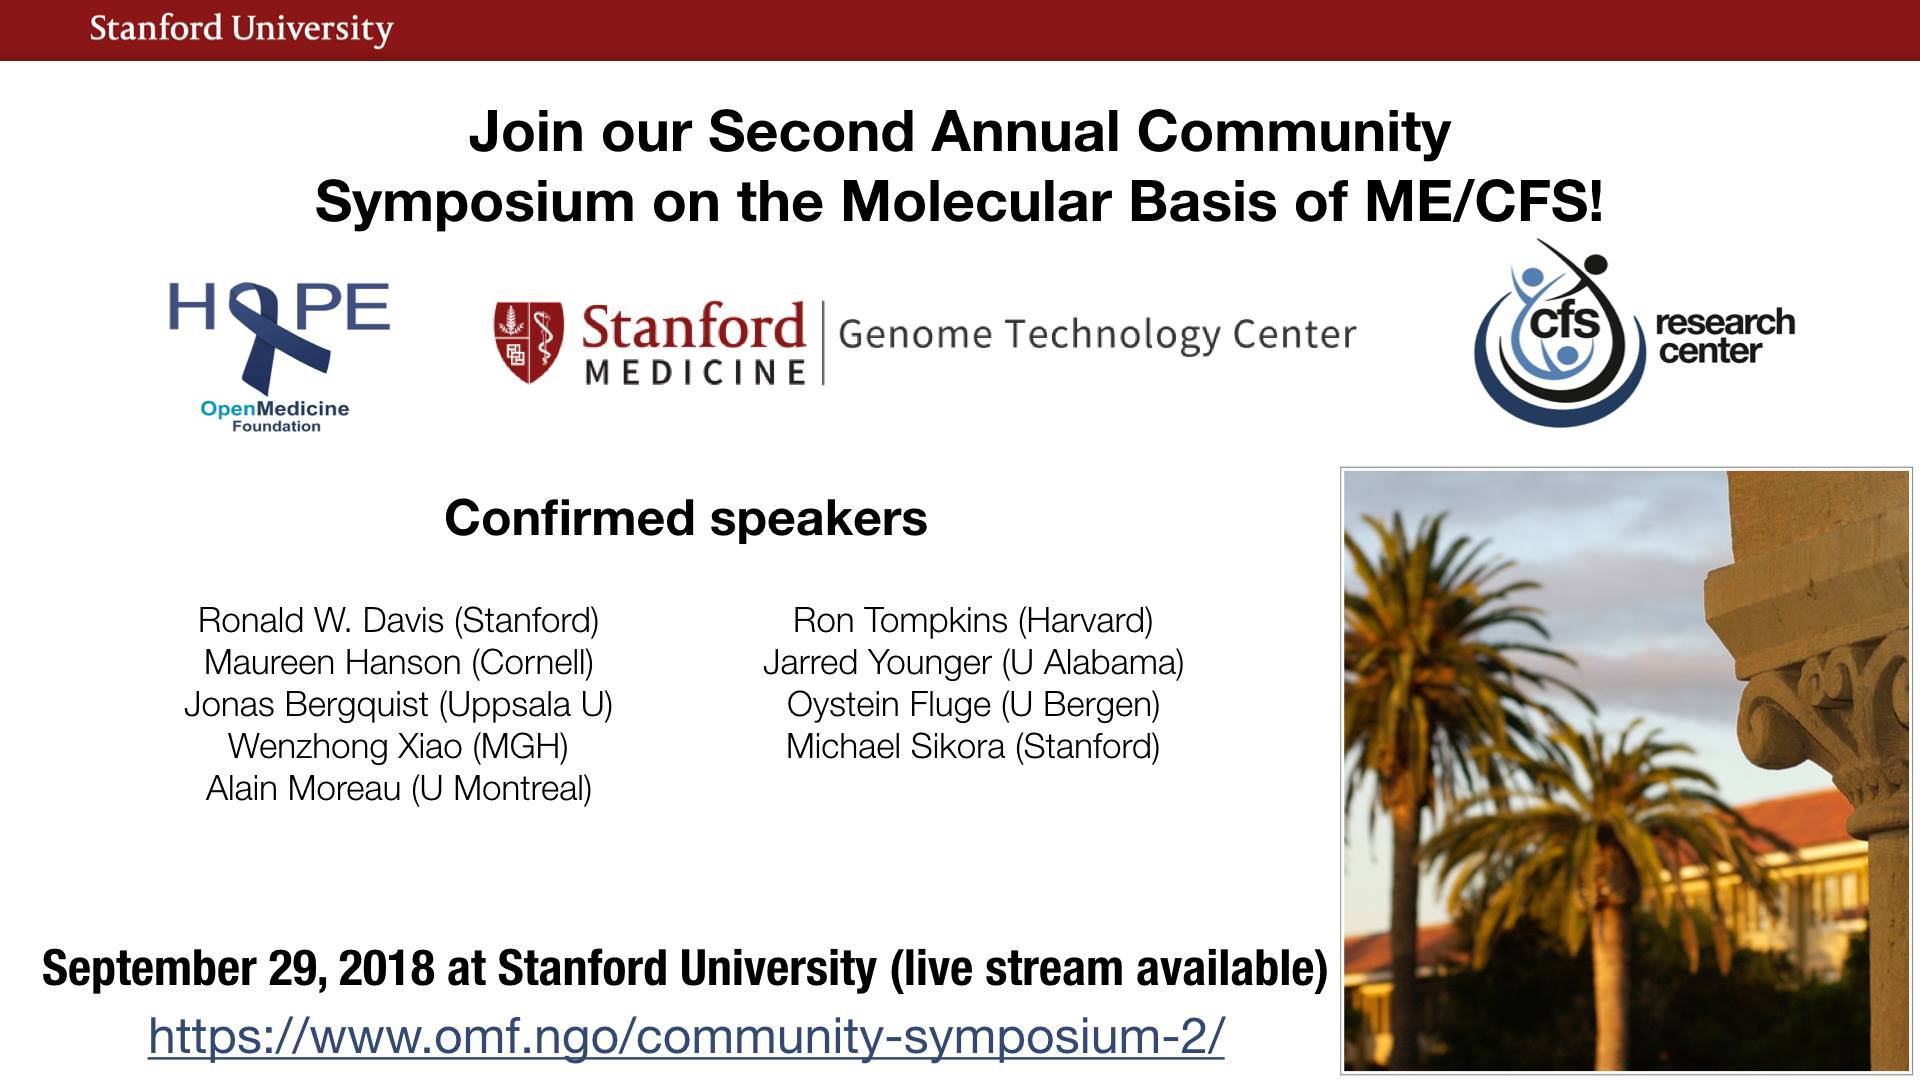 Open Medicine Foundation Symposium